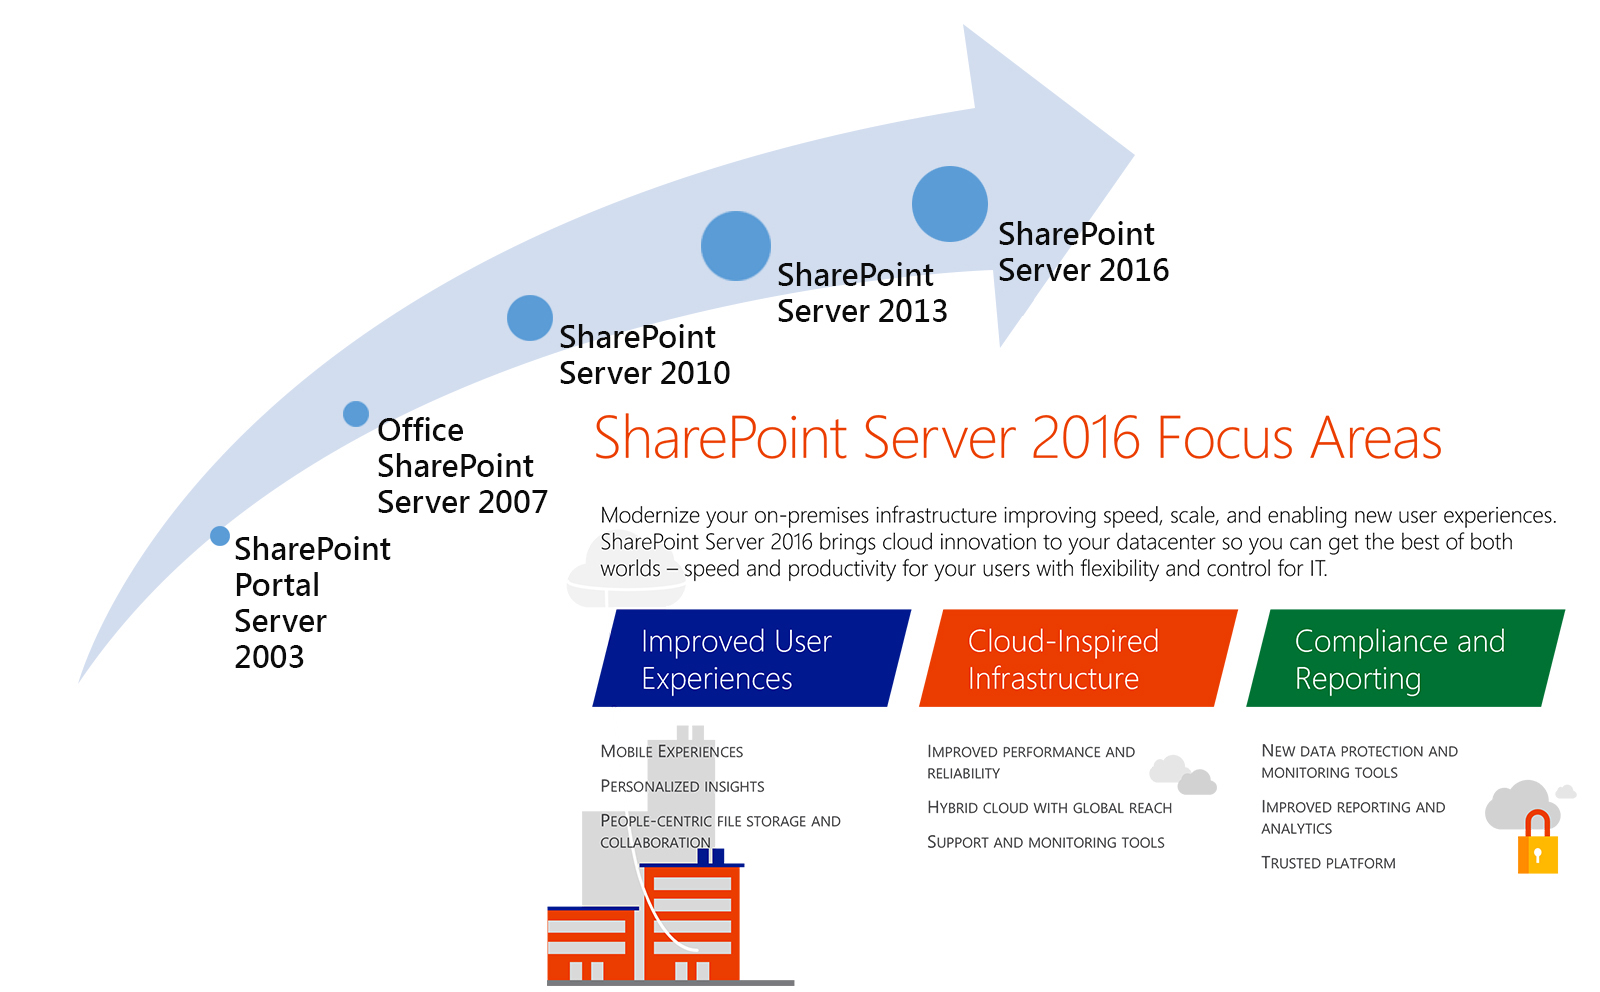 sharepoint 2016 implementation planning and designing a sharepoint Implementation Plan Timeline sharepoint 2016 implementation planning and designing a sharepoint 2016 implementation